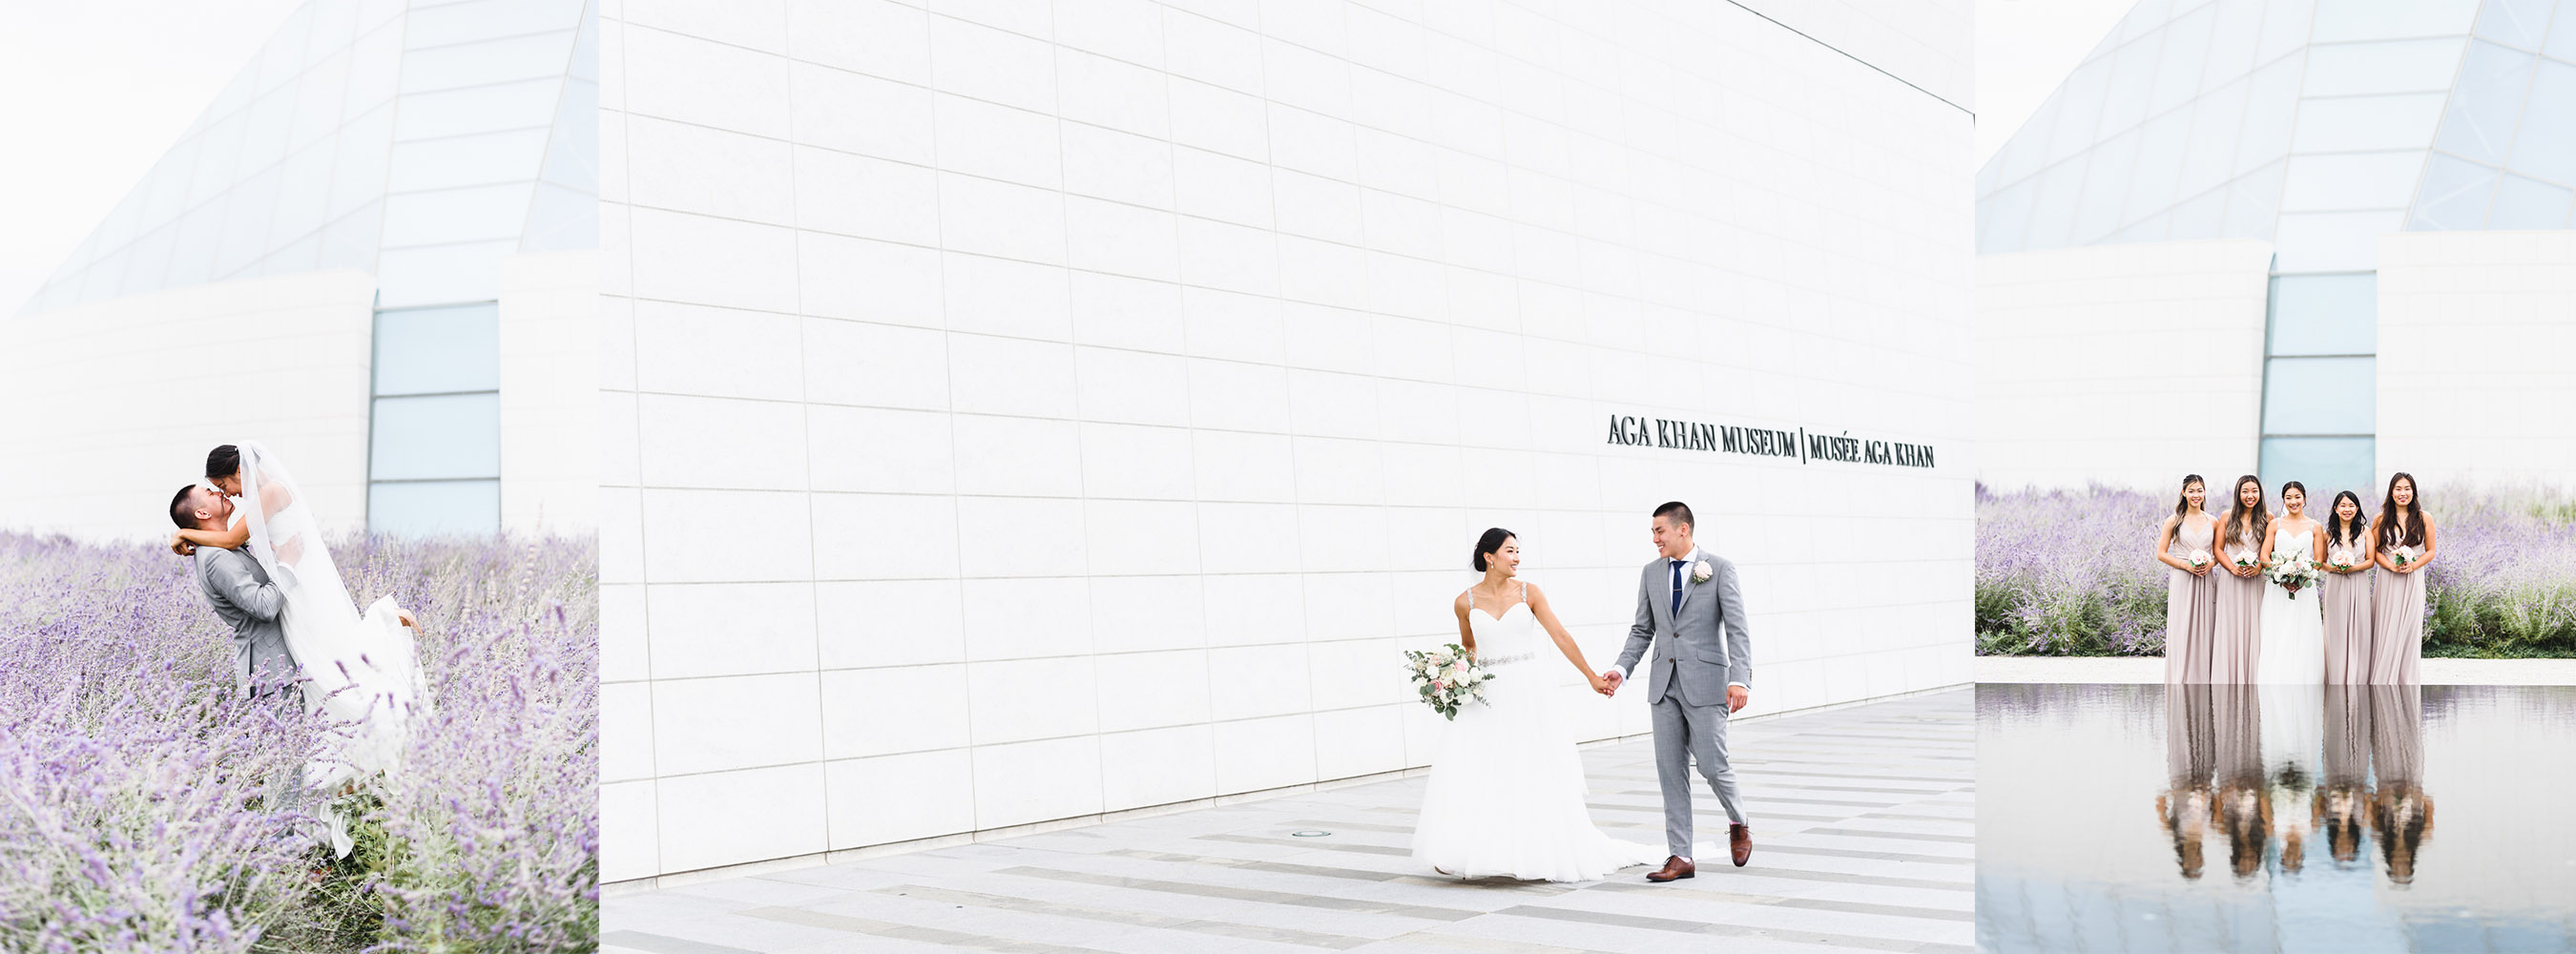 wedding photoshoot at Aga Khan Museum in Toronto with a lavender field